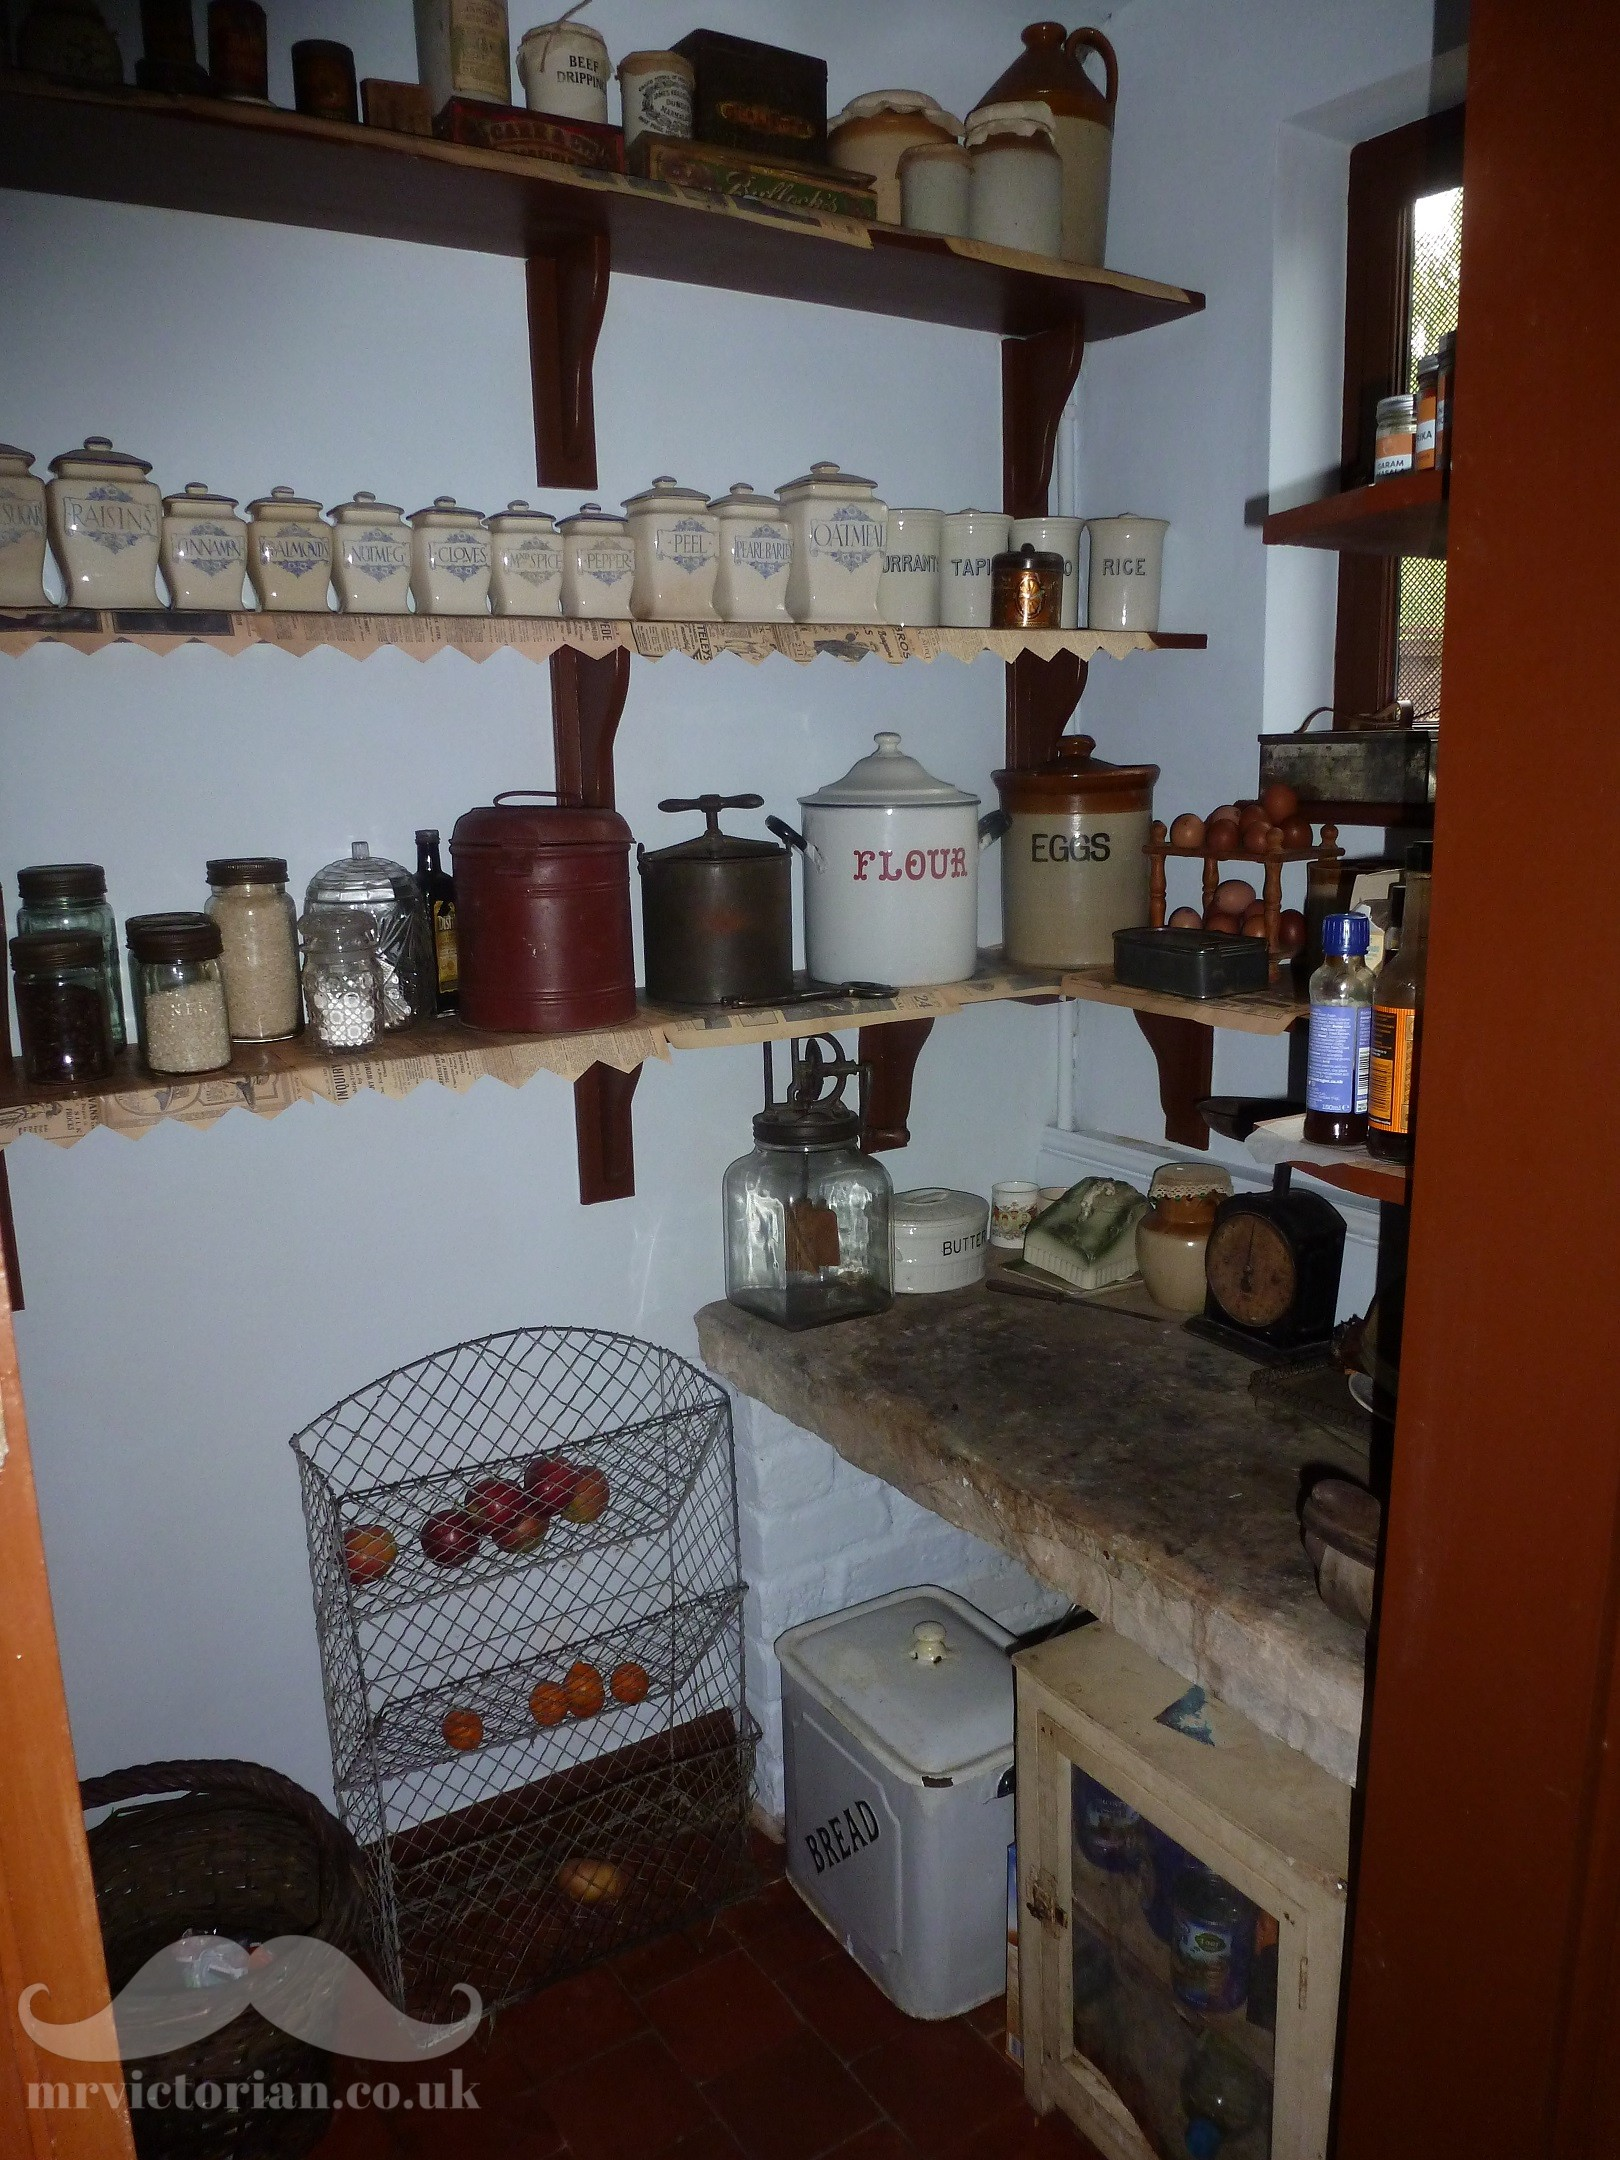 Victorian house pantry with 1920s foods and colour scheme. Visit www.mrvictorian.co.uk